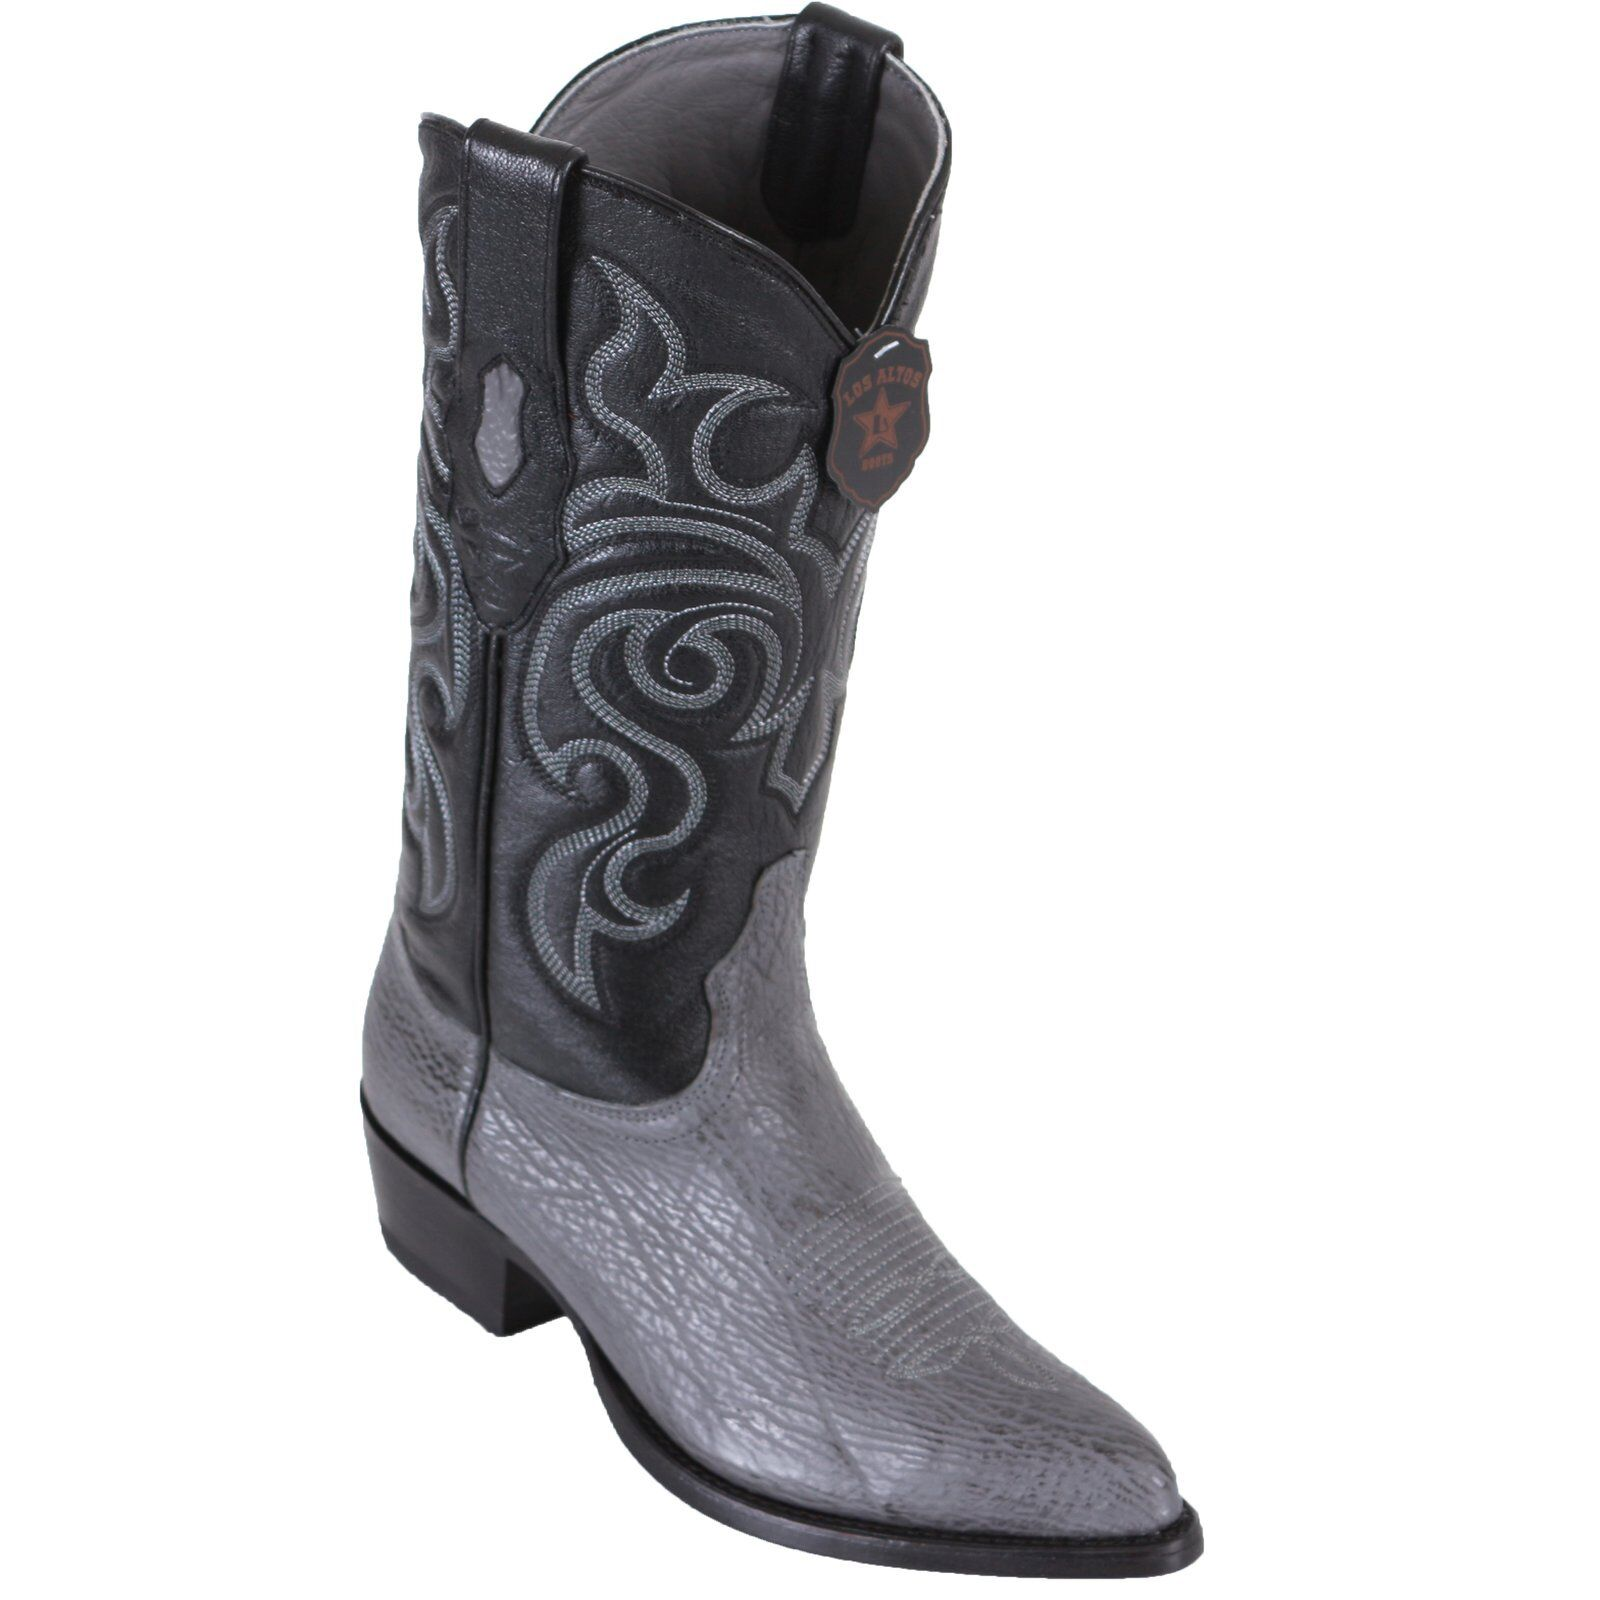 LOS ALTOS GRAY GENUINE SHARK SHARK SHARK WESTERN COWBOY BOOT J-Toe D 21ddea